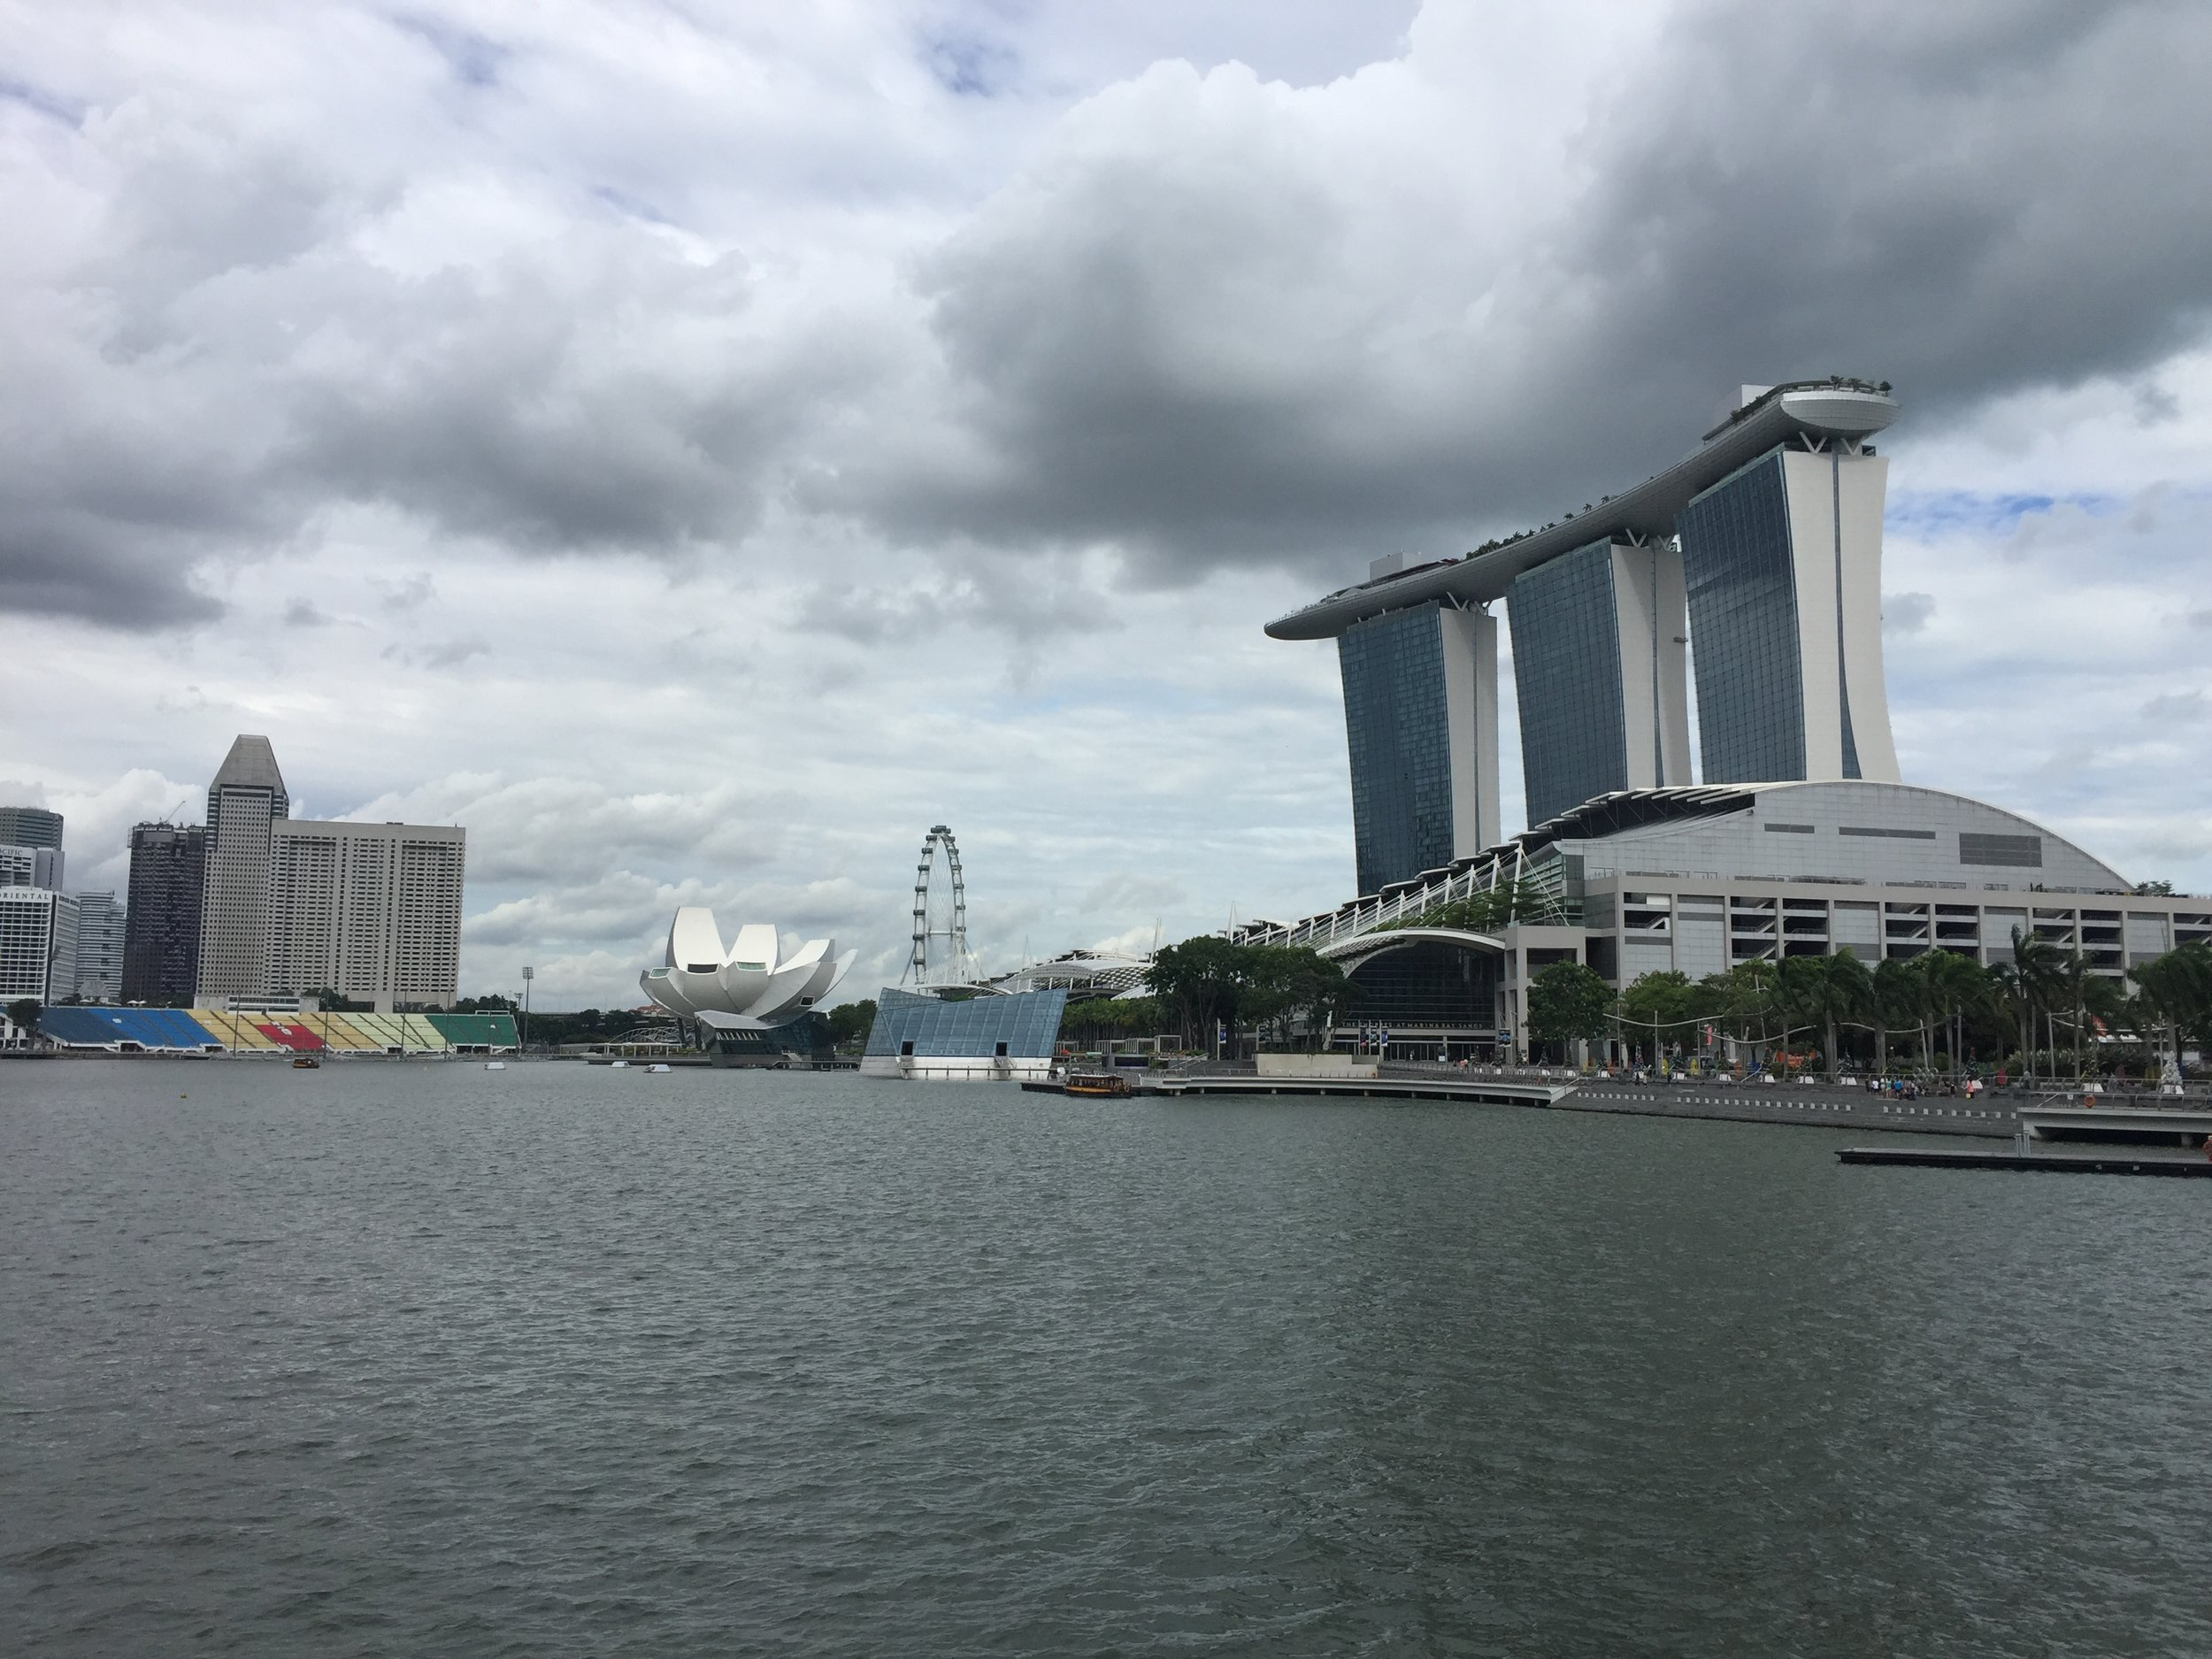 The Marina Bay Sands building and observation deck.